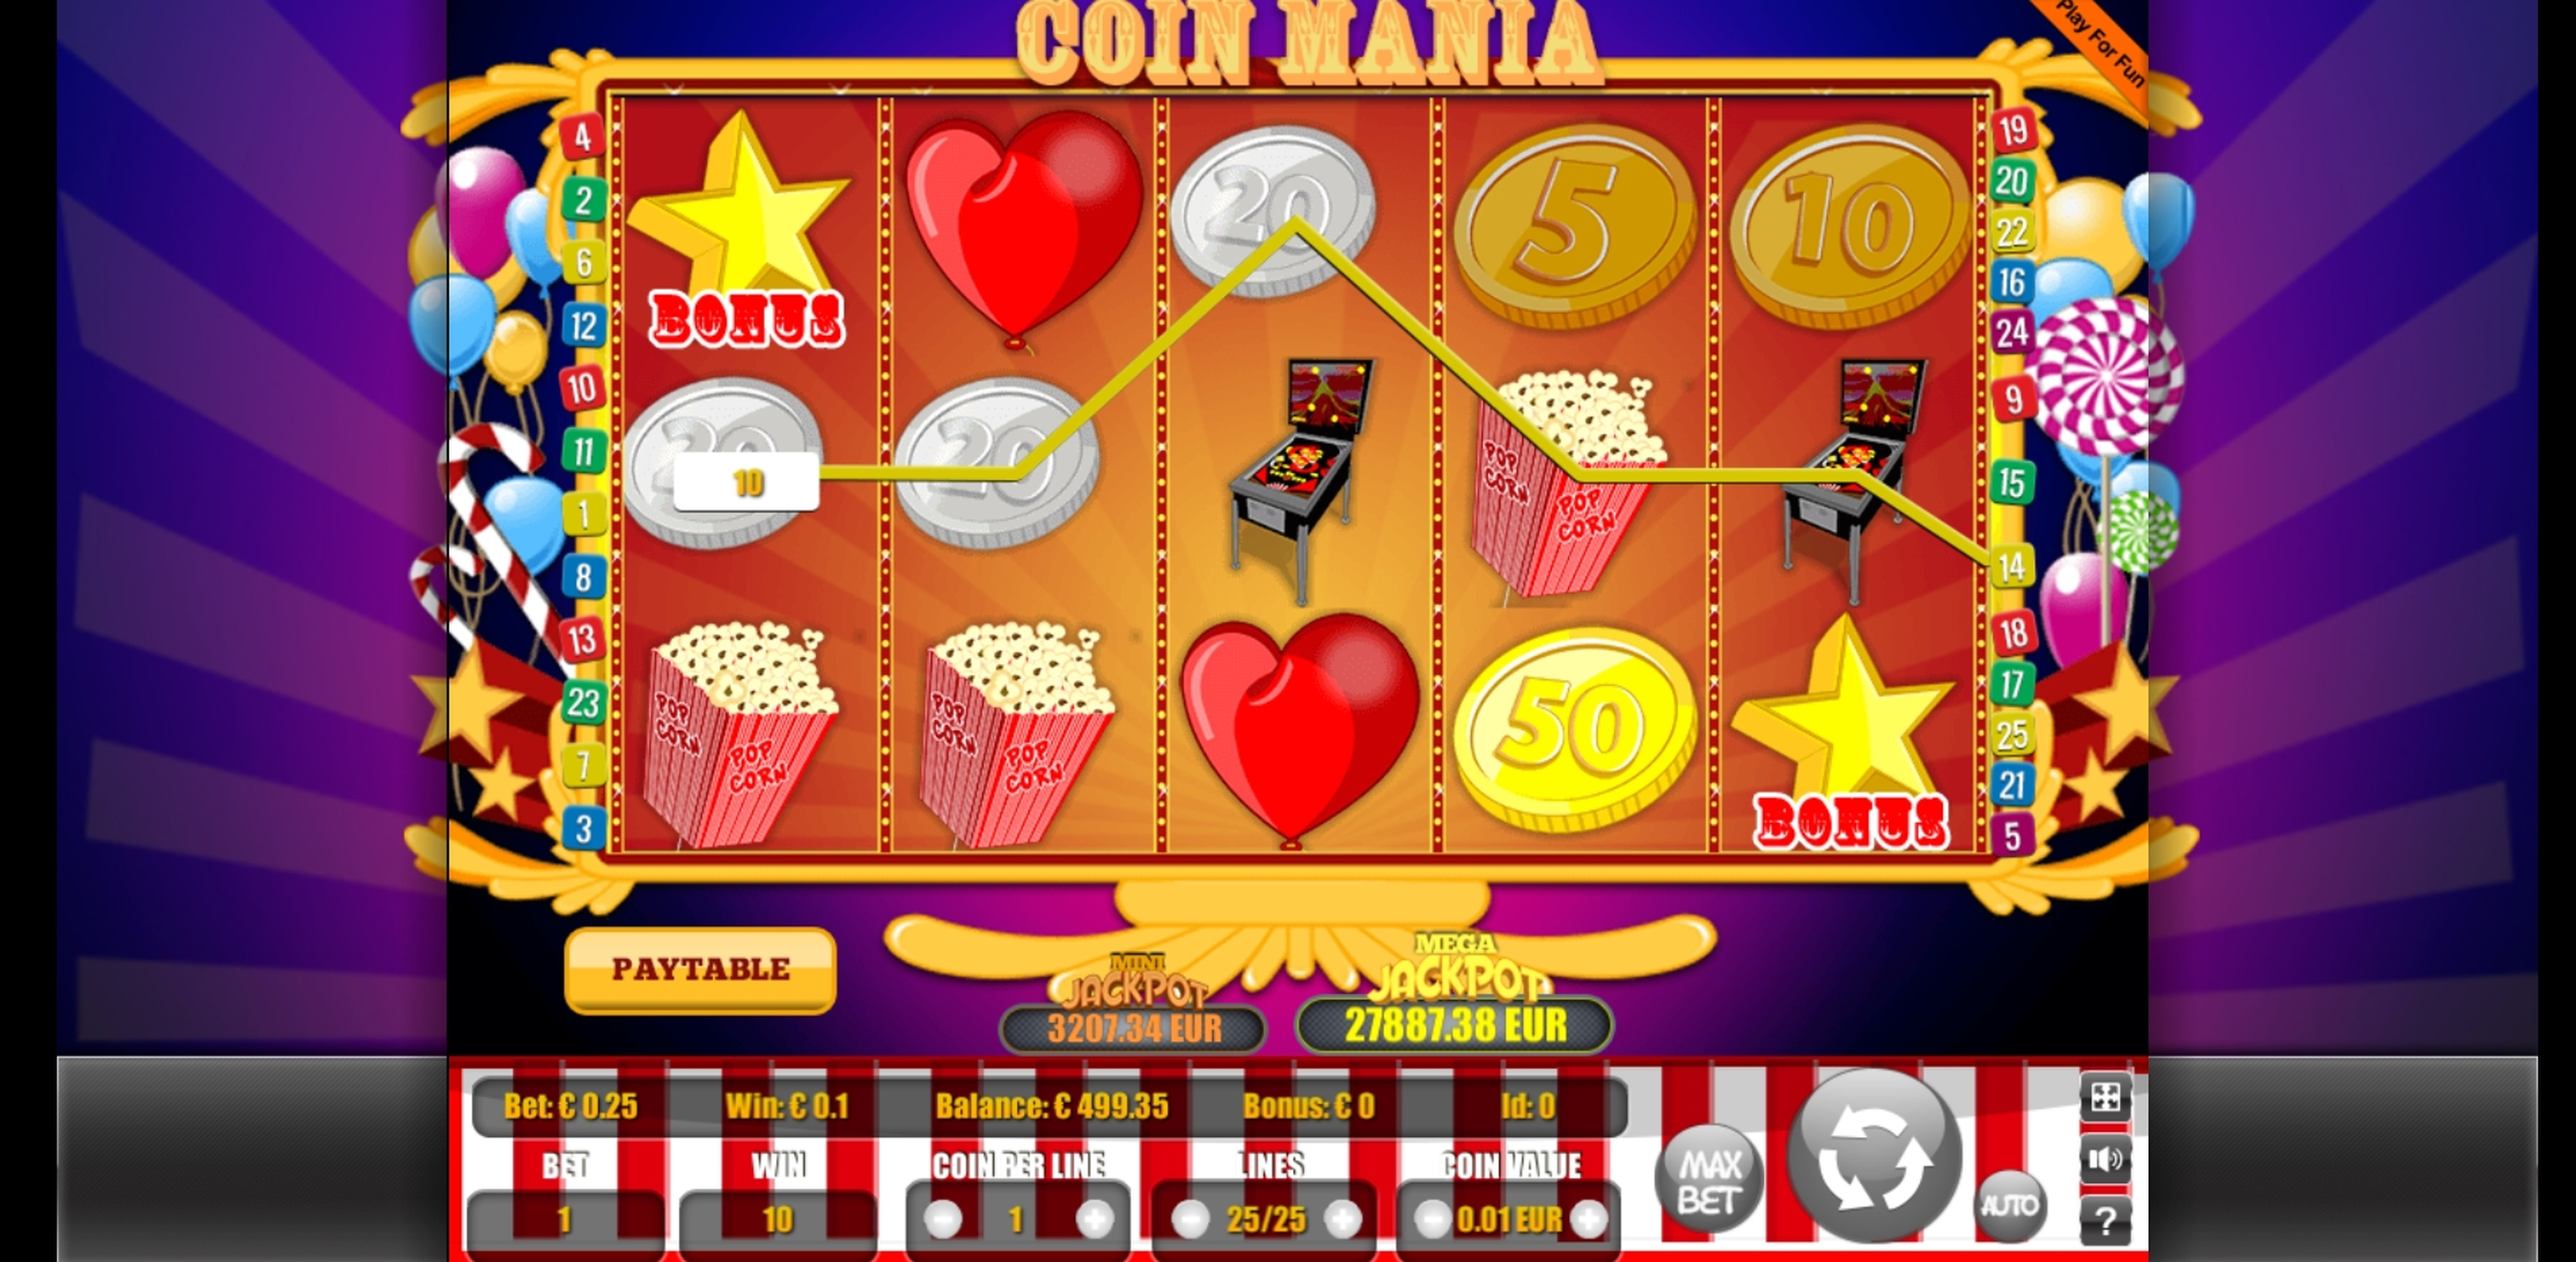 Win Money in Coin Mania Free Slot Game by Portomaso Gaming